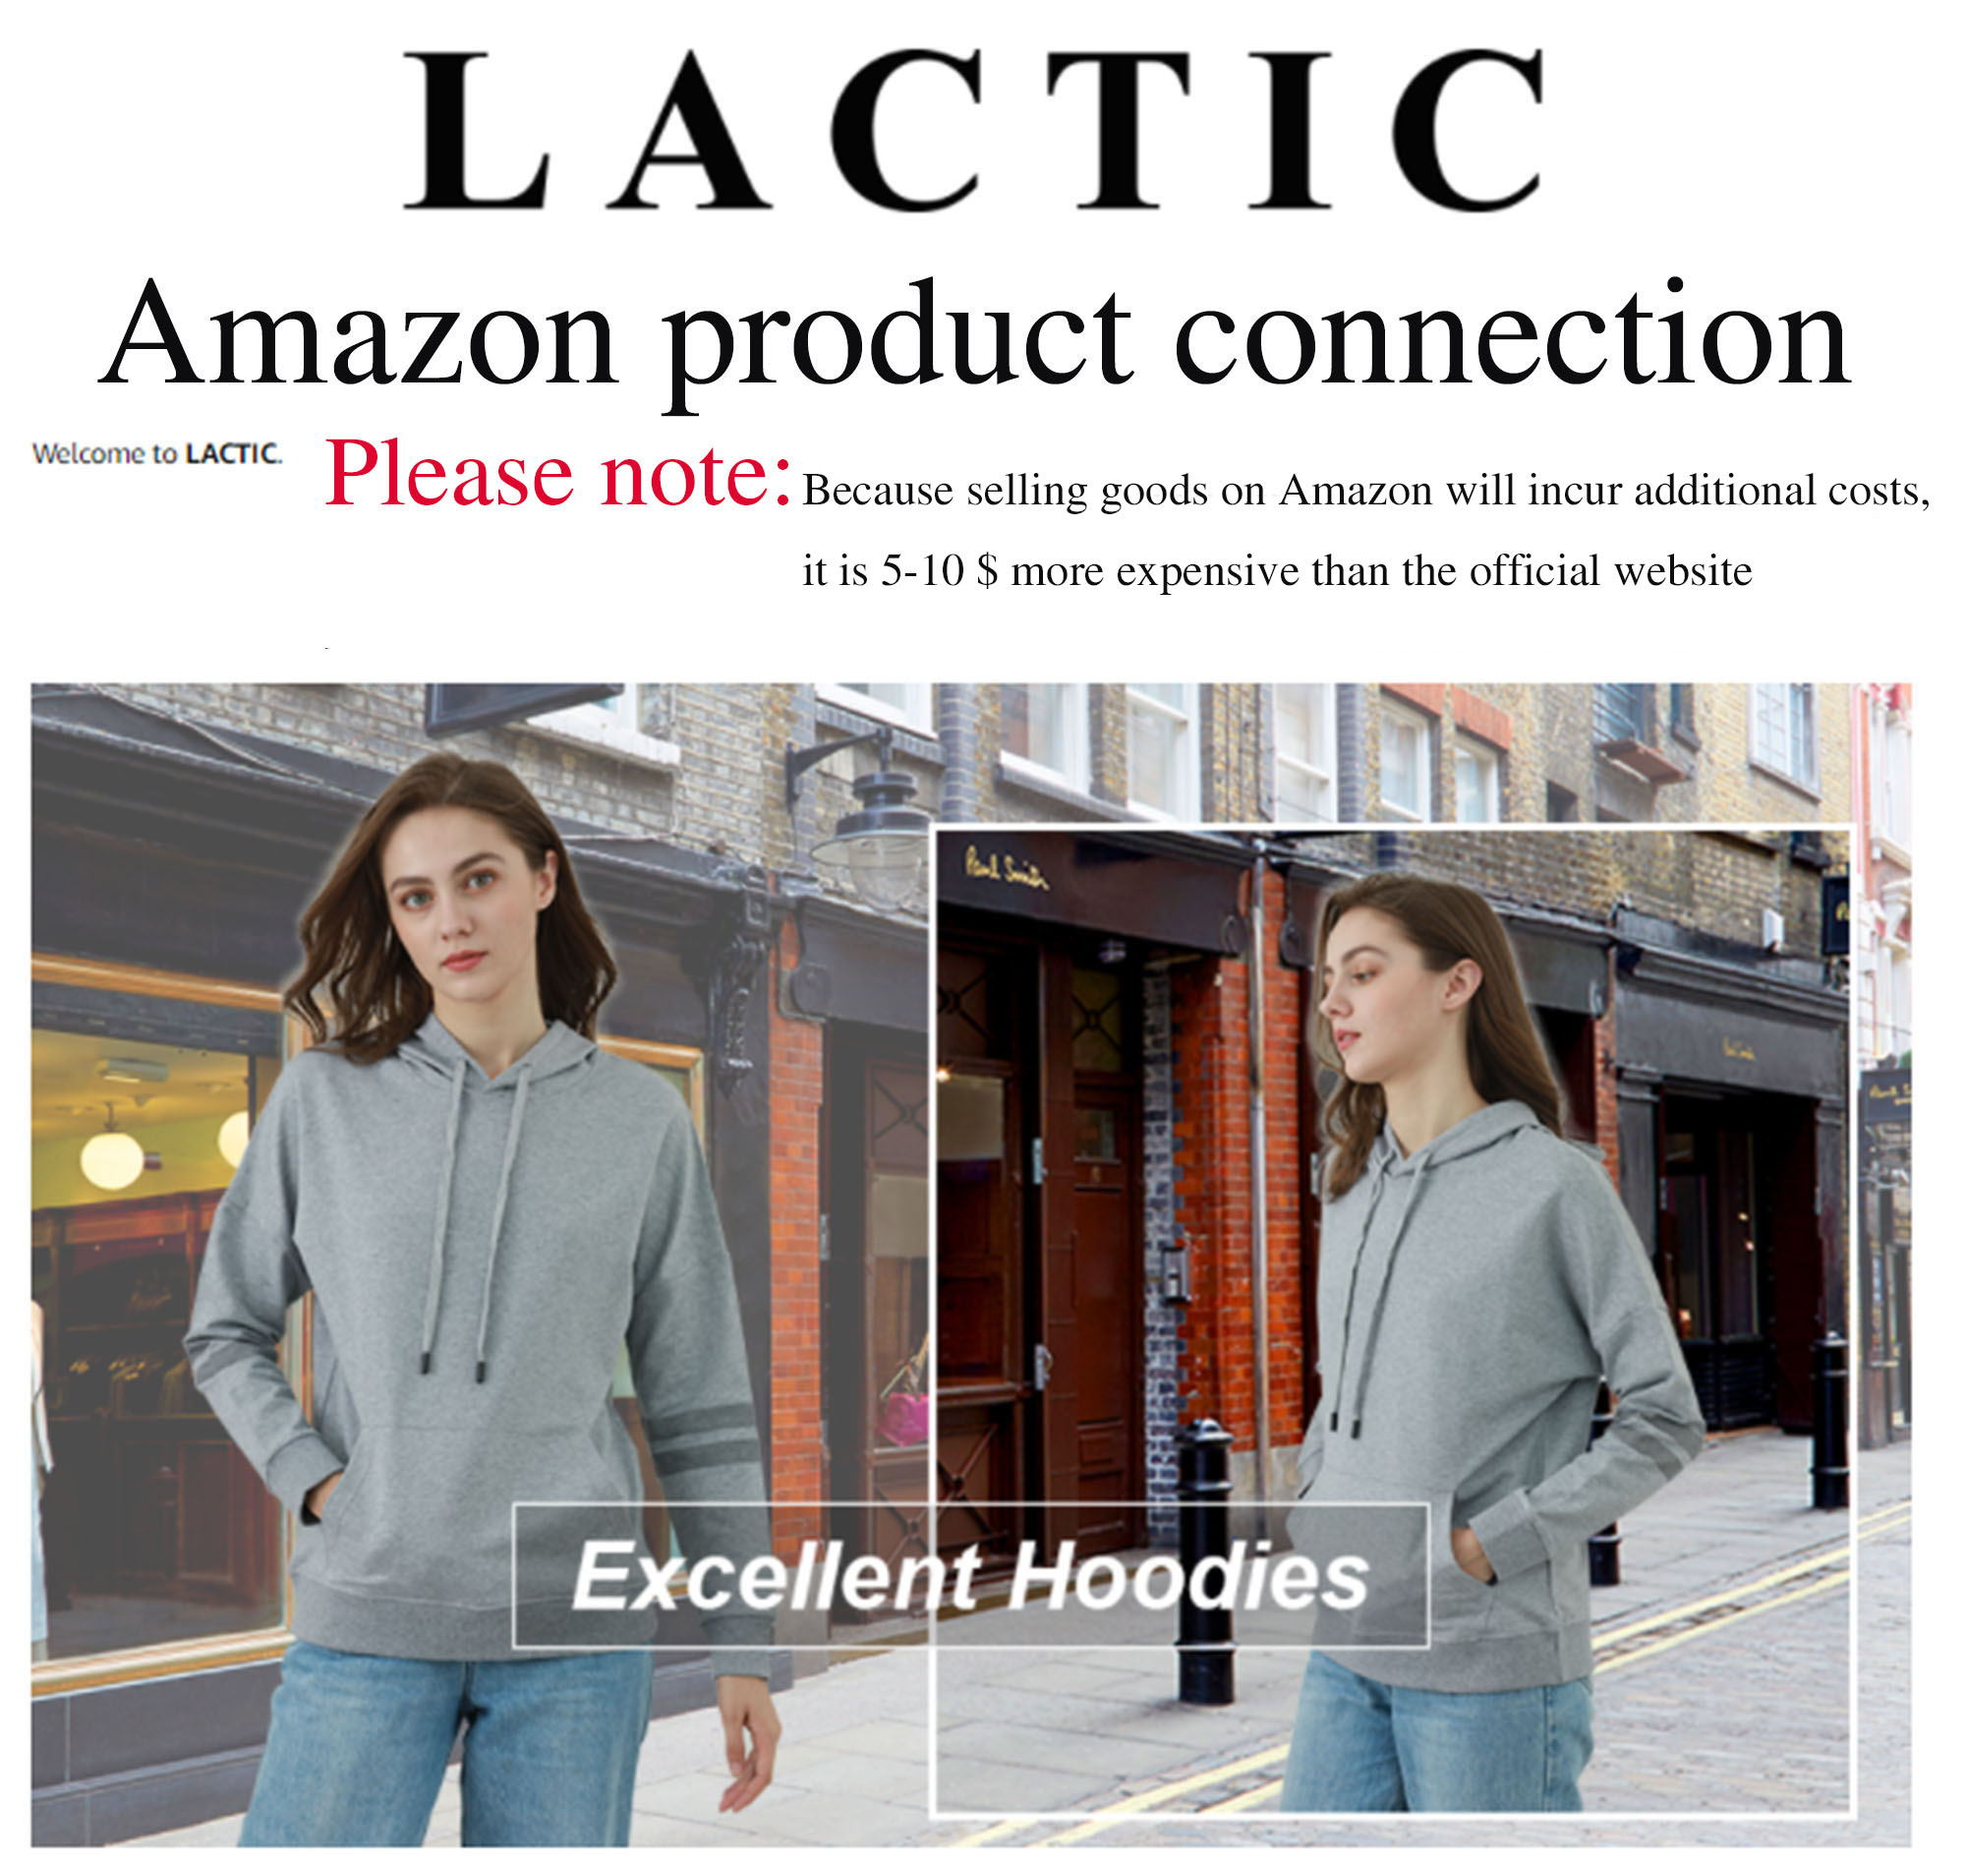 LACTIC clothing Amazon merchandise